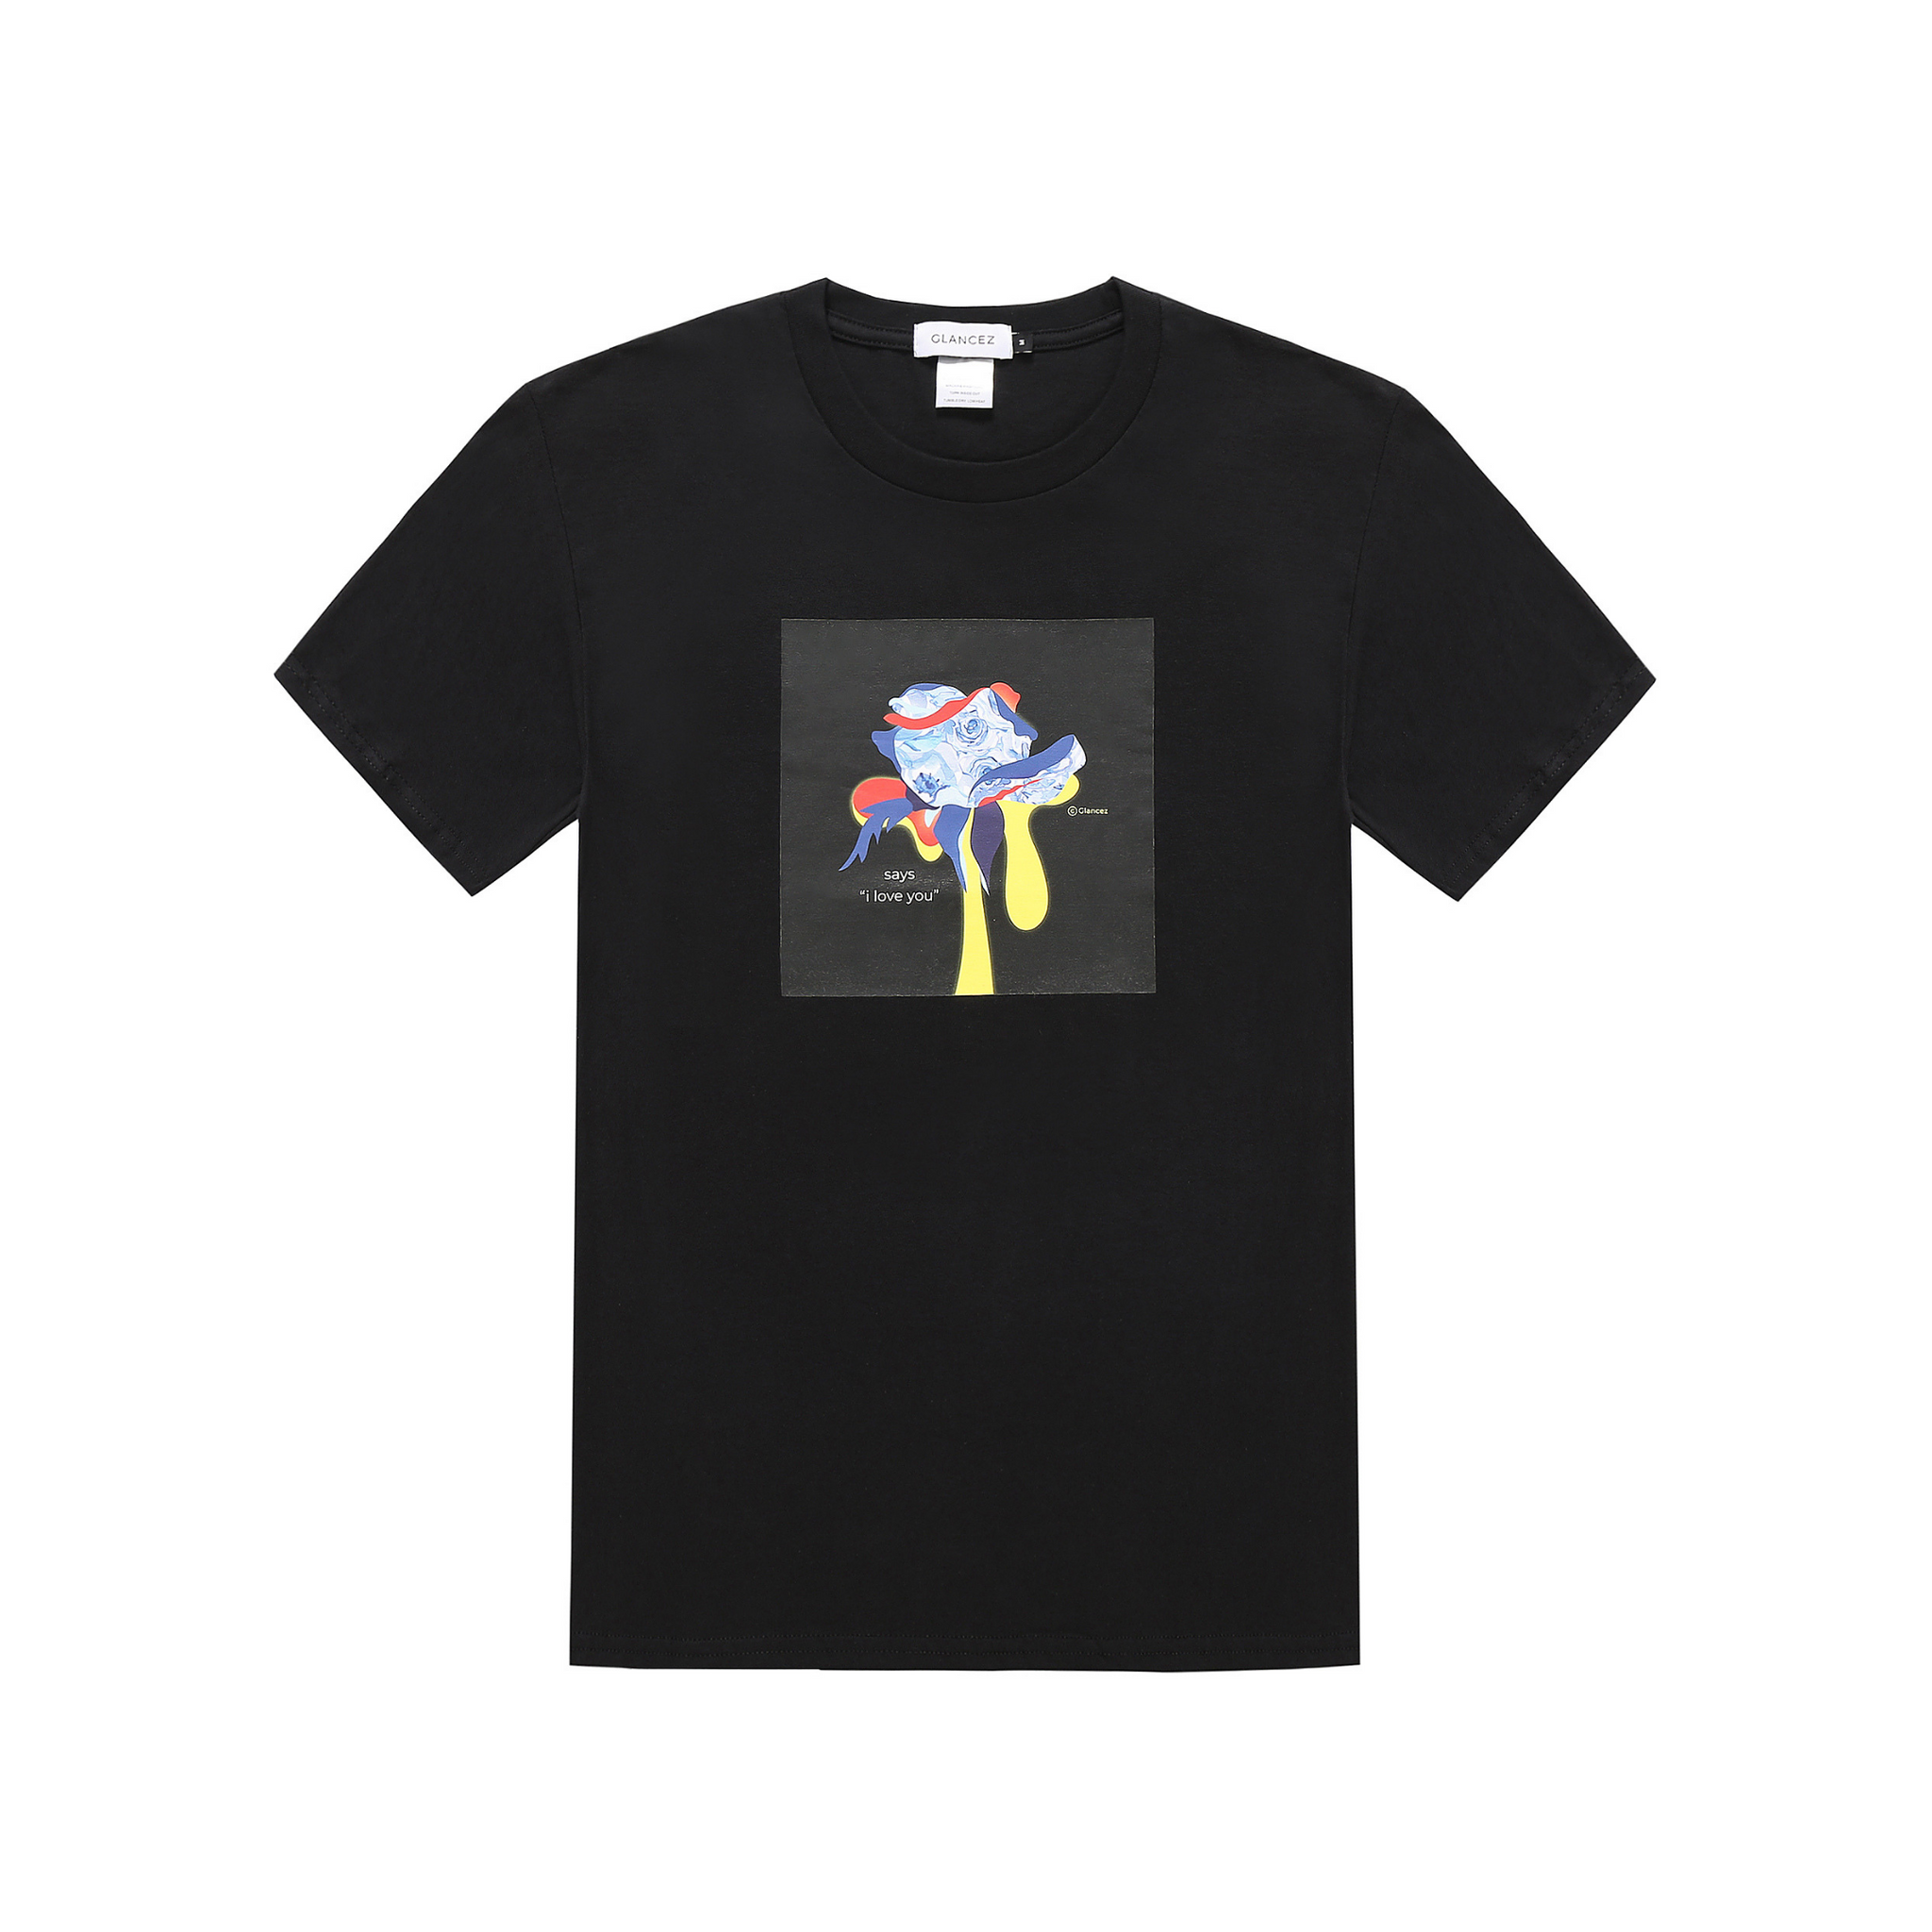 Original I Love You T-shirt In Black